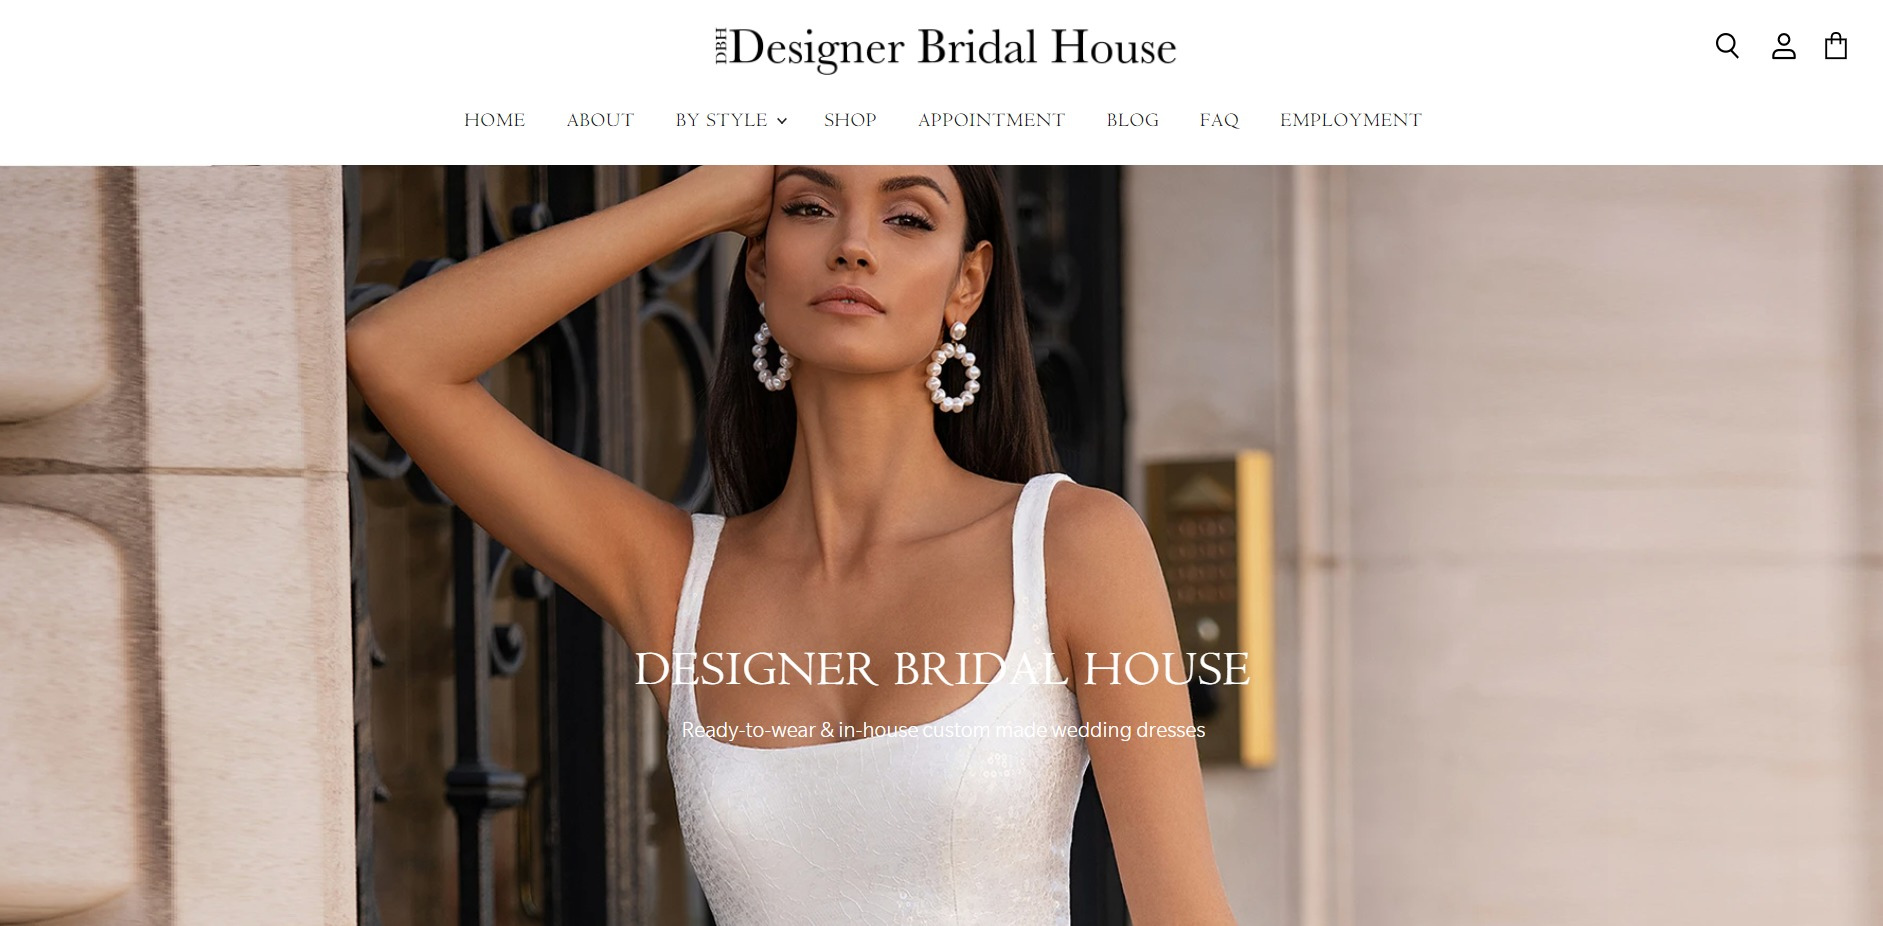 Designer Bridal House